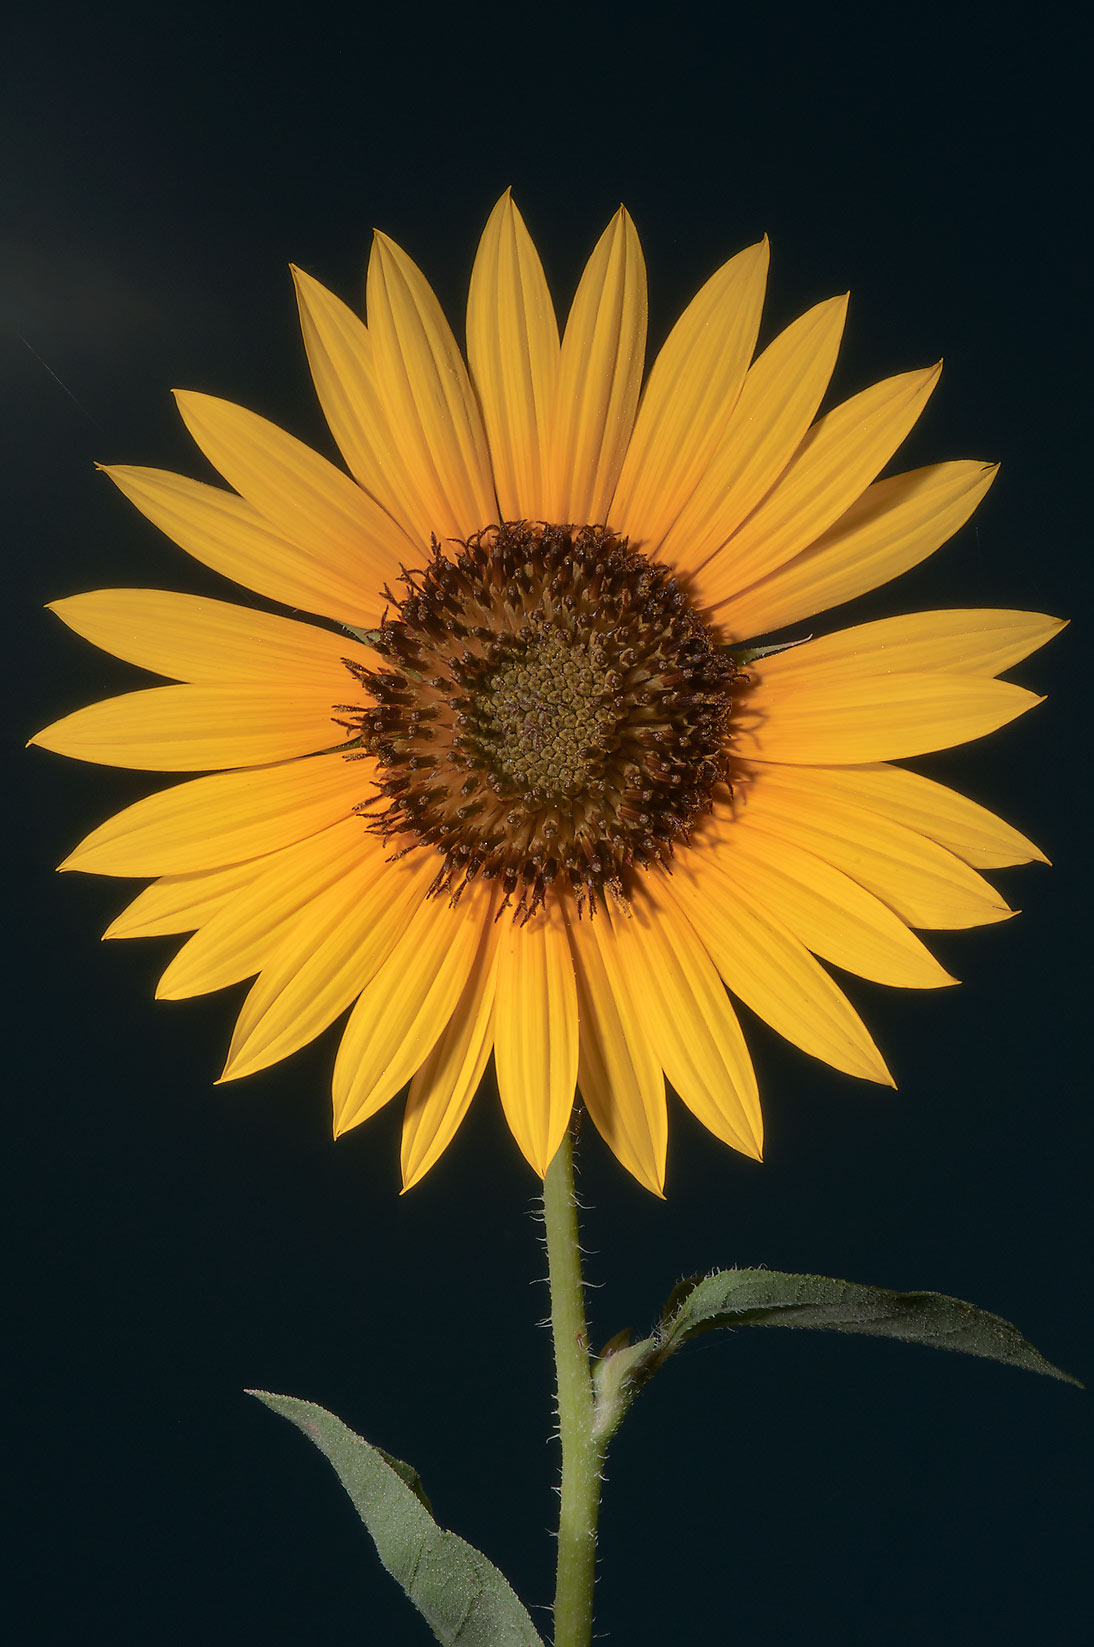 Sunflower in TAMU Horticultural Gardens in Texas...M University. College Station, Texas